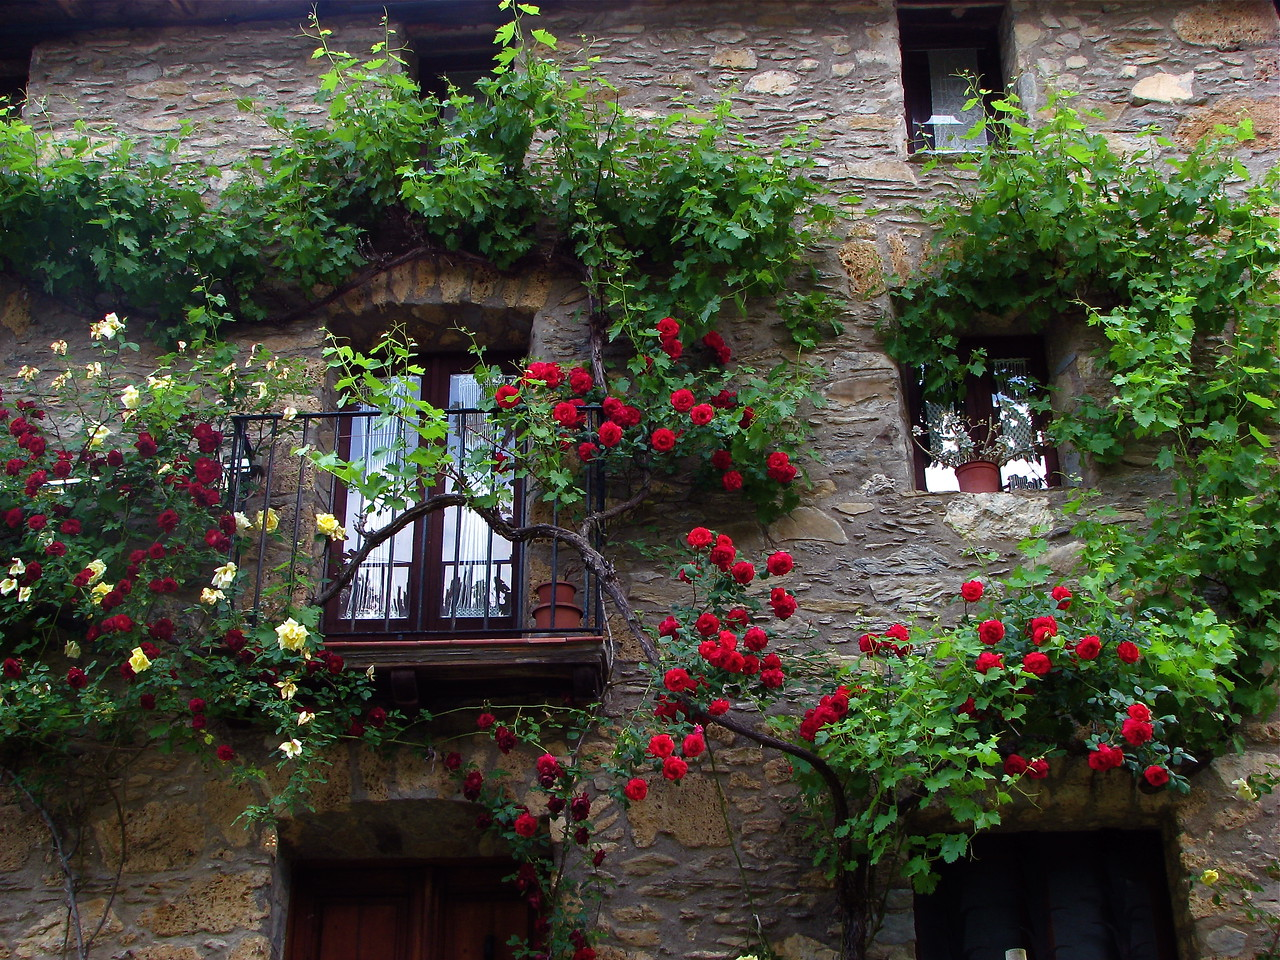 They sure know how to grow roses.  This is the wall of a house in the charming little town of Beget, Alta Garrotxa, Catalonia, Spain.